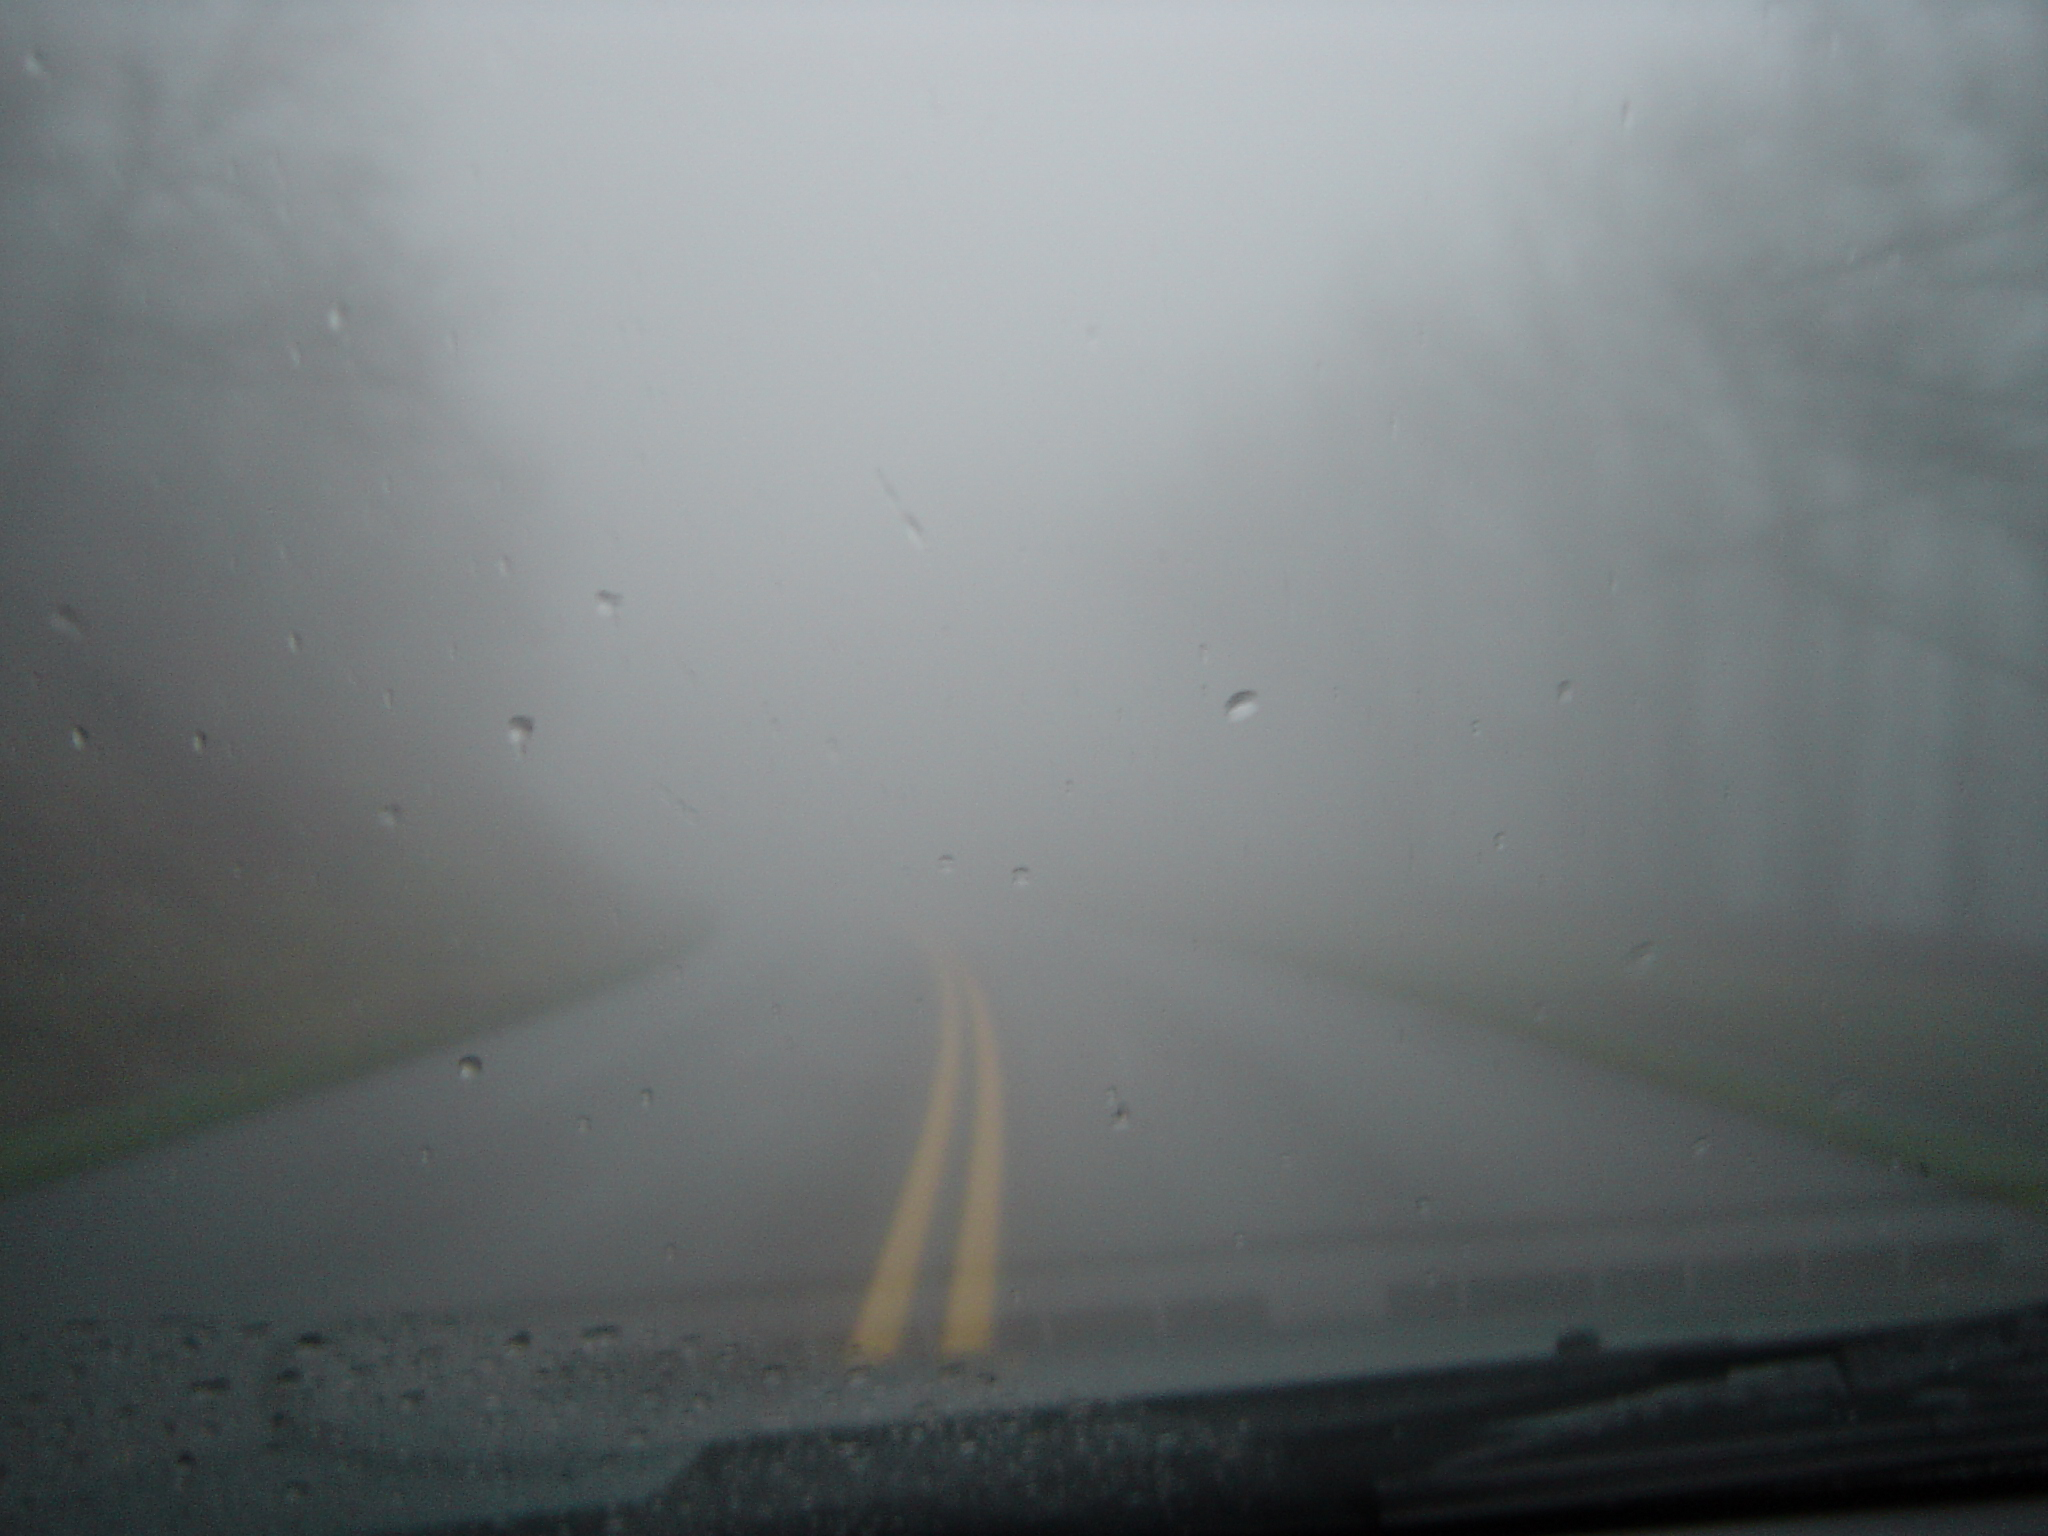 fog or mist on the road